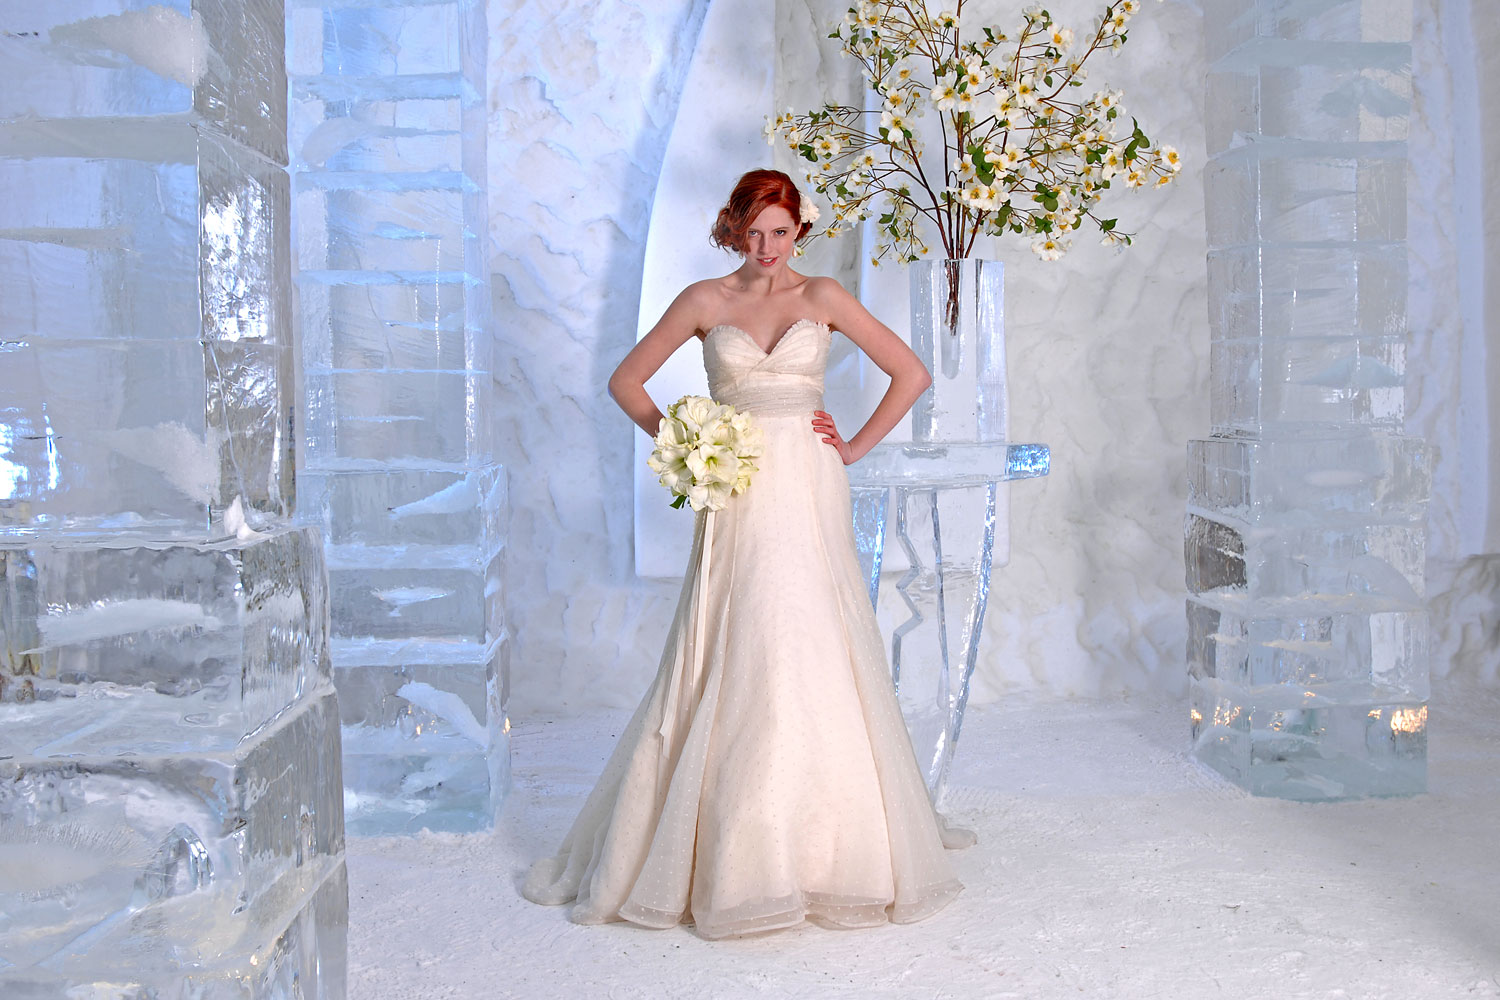 Ice Hotel Wedding Fashion Shoot At The Ice Hotel Vermont